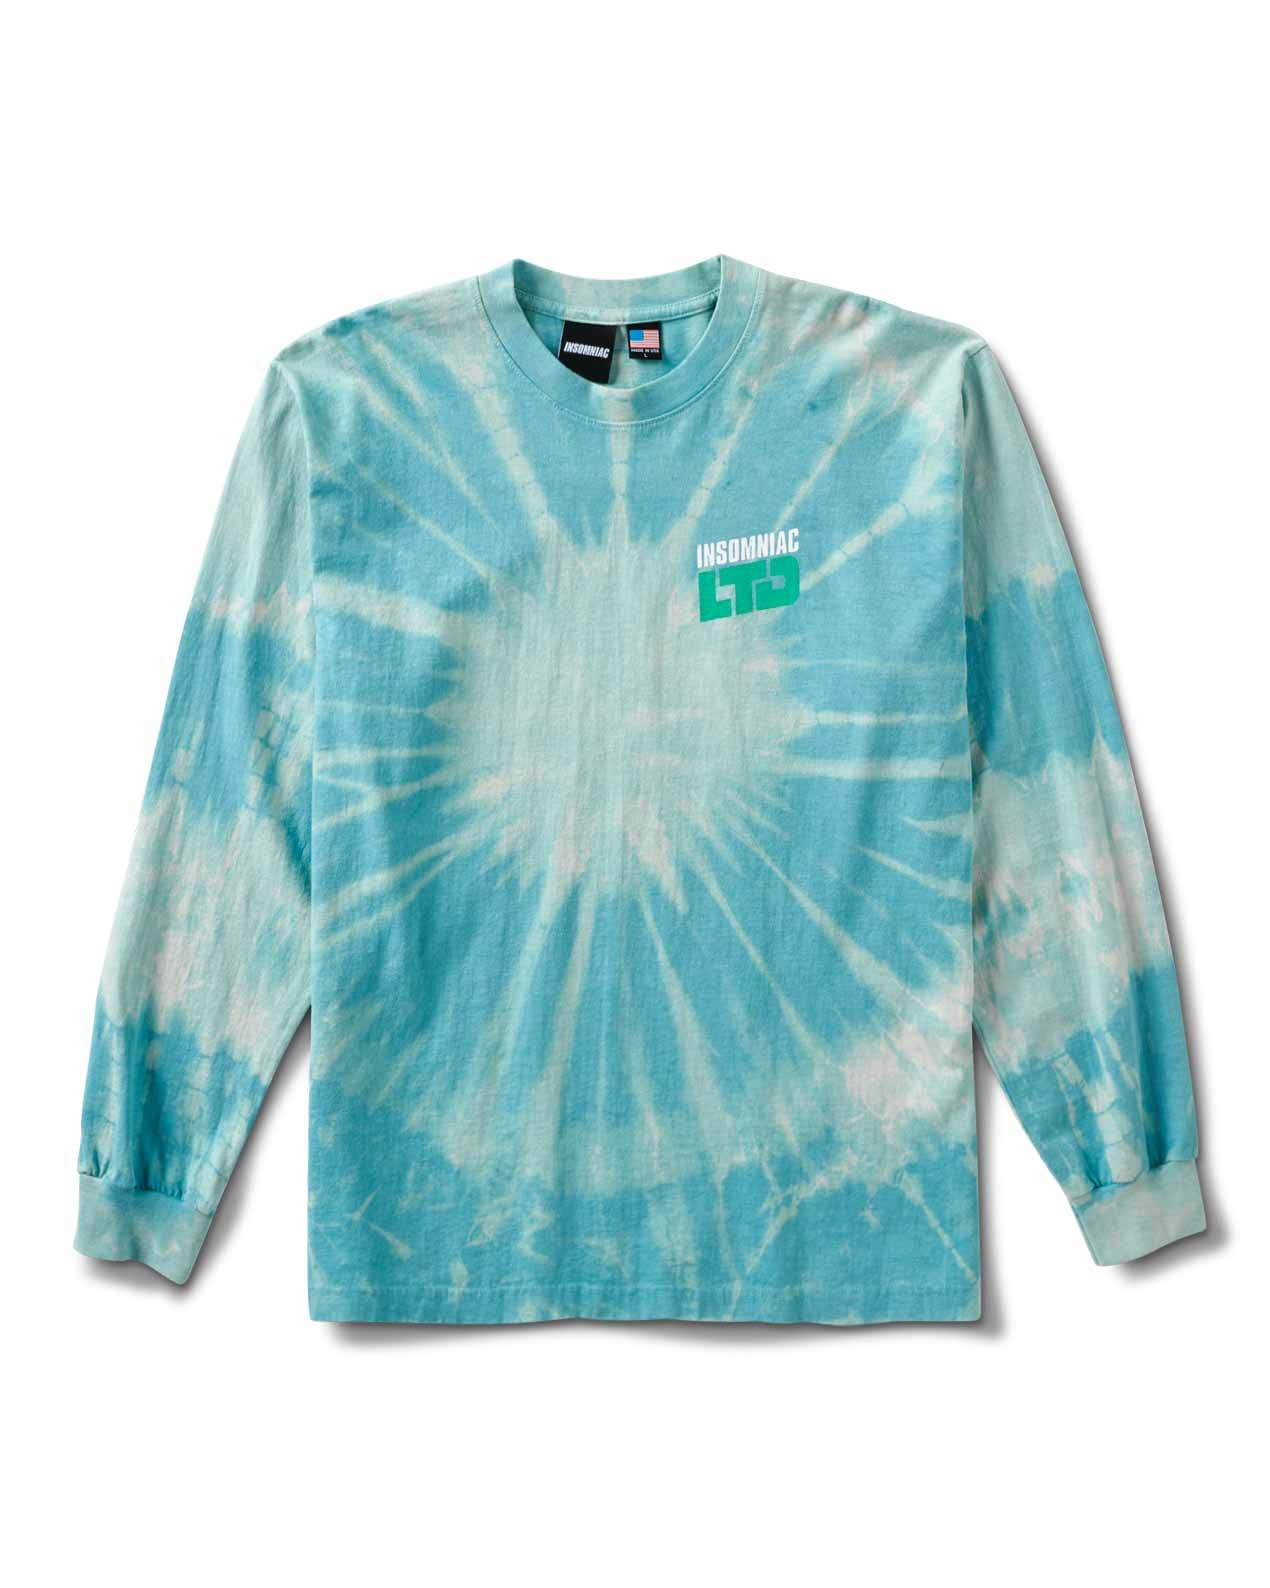 INSOMNIAC M'S SHIRTS WORLD PSYCH PARTY LS T BLUE TIE DYE